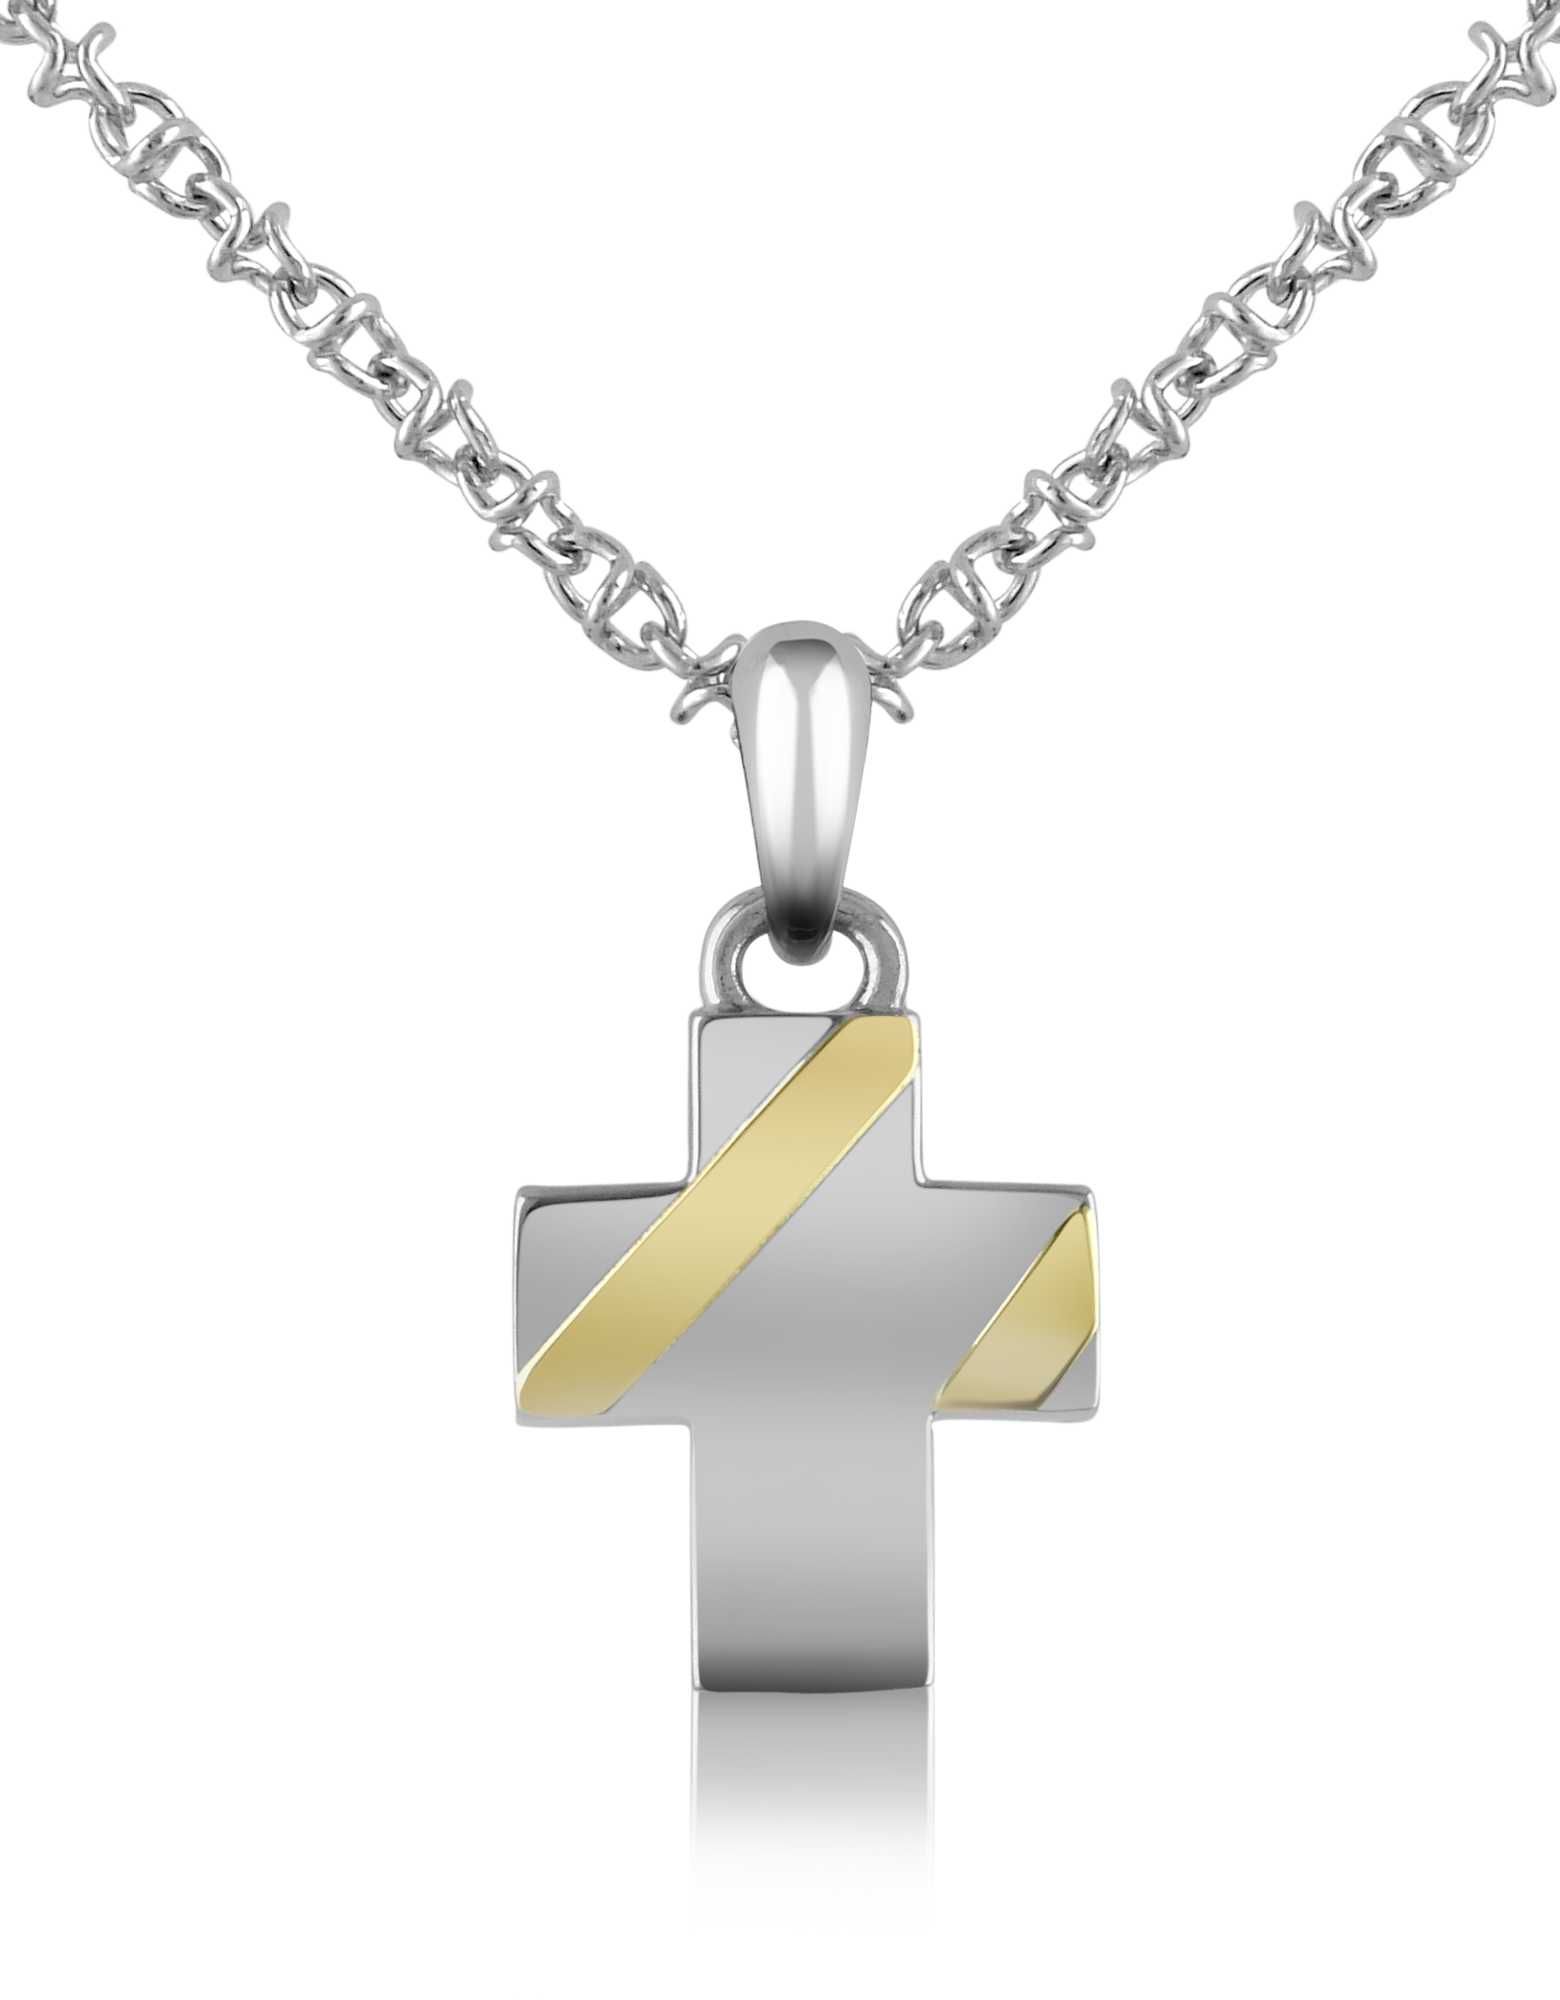 Image of Stainless Steel Cross Pendant Necklace